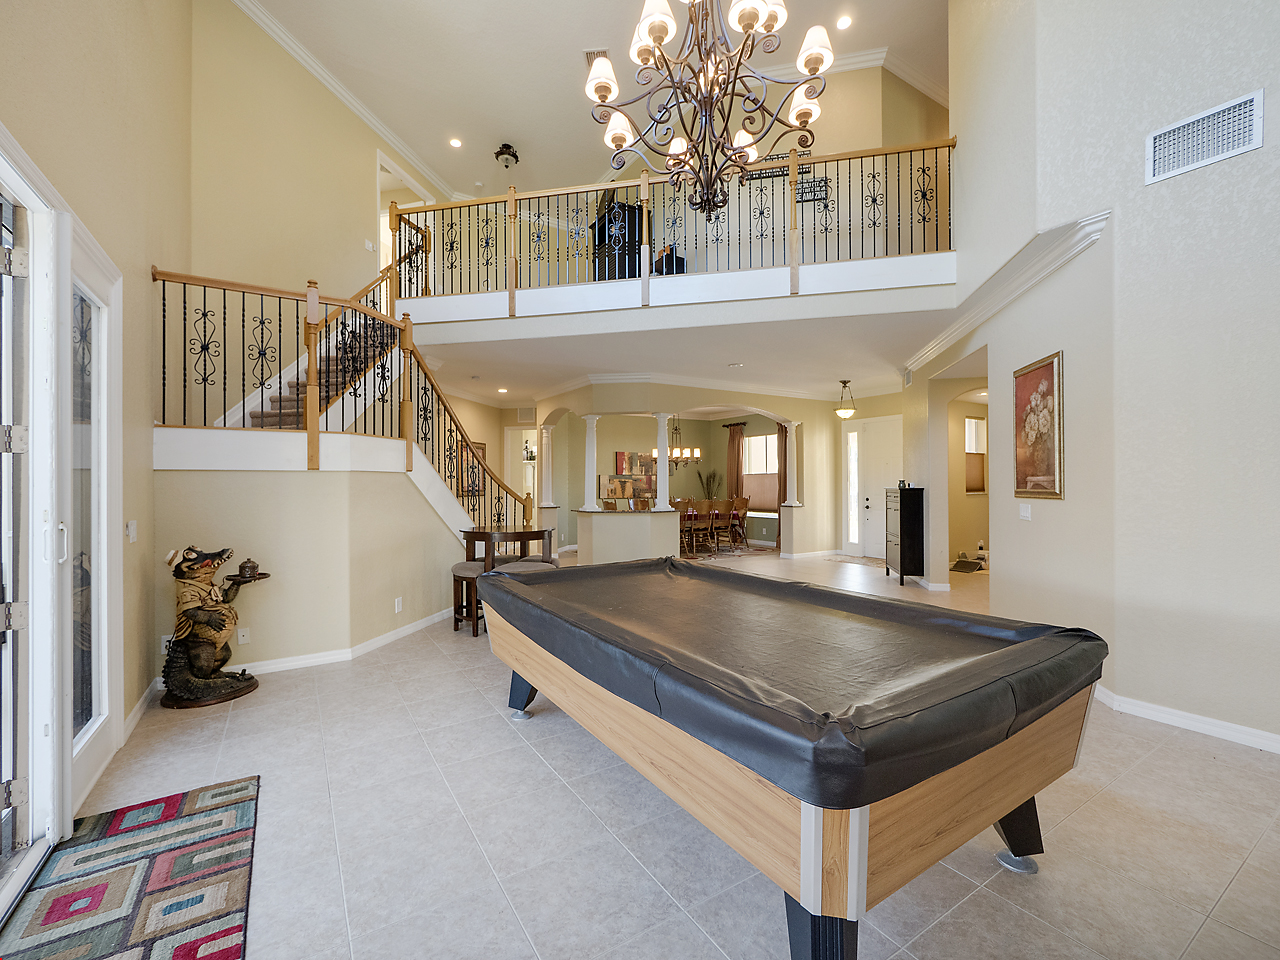 SIX BEDROOM HOME FOR SALE